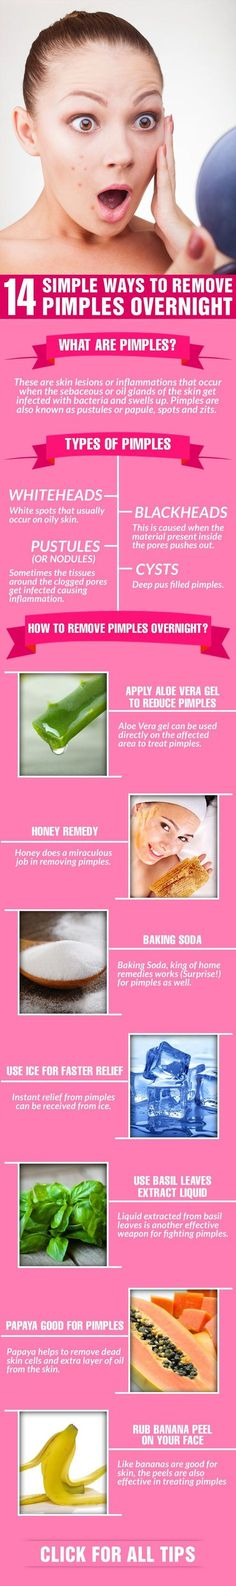 How To Remove Pimples Overnight Oily Skin Products Acne Blackheads Remedies Pure Fiji Natural Skin Care Products Made With Virgin Coconut Oil for Natural Beauty Tropical Ingredients From Fiji Skin Moles, Acne Skin, Acne Scars, Acne Blemishes, Acne Face, Bad Acne, Rosacea, Remove Pimples Overnight, How To Get Rid Of Pimples